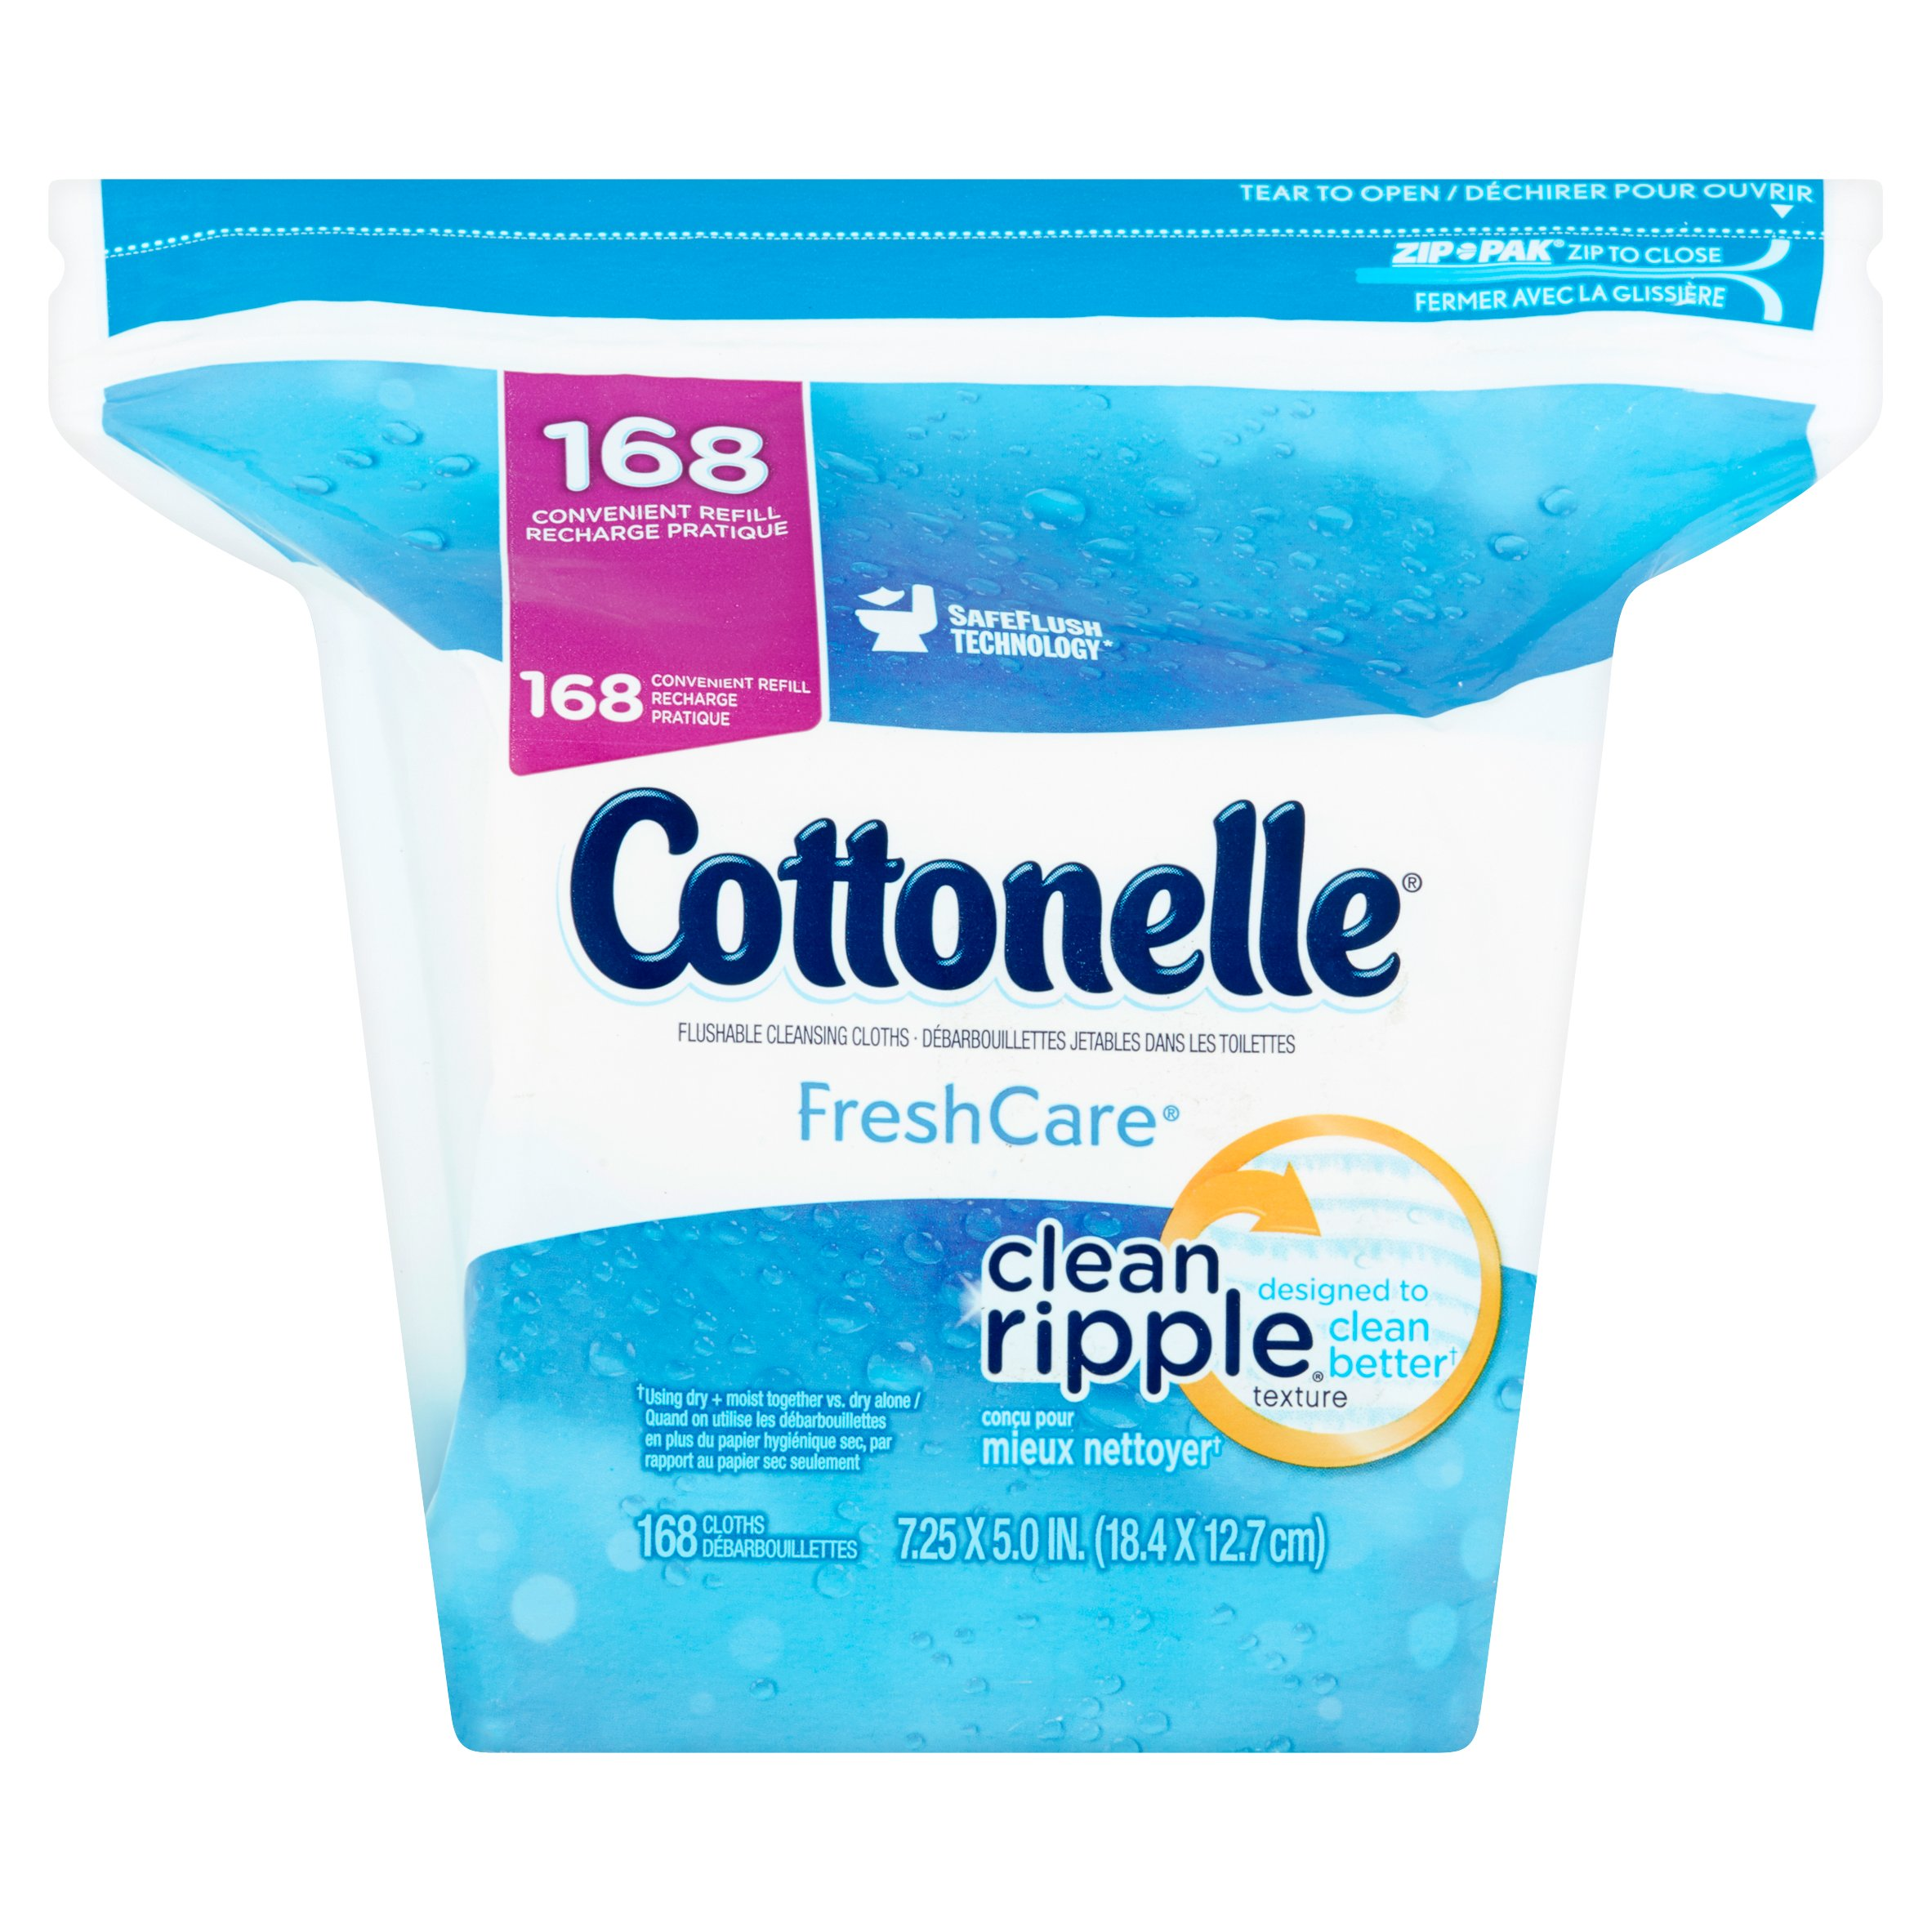 Cottonelle Wipes, 168 Count, FreshCare Flushable Cleansing Cloths